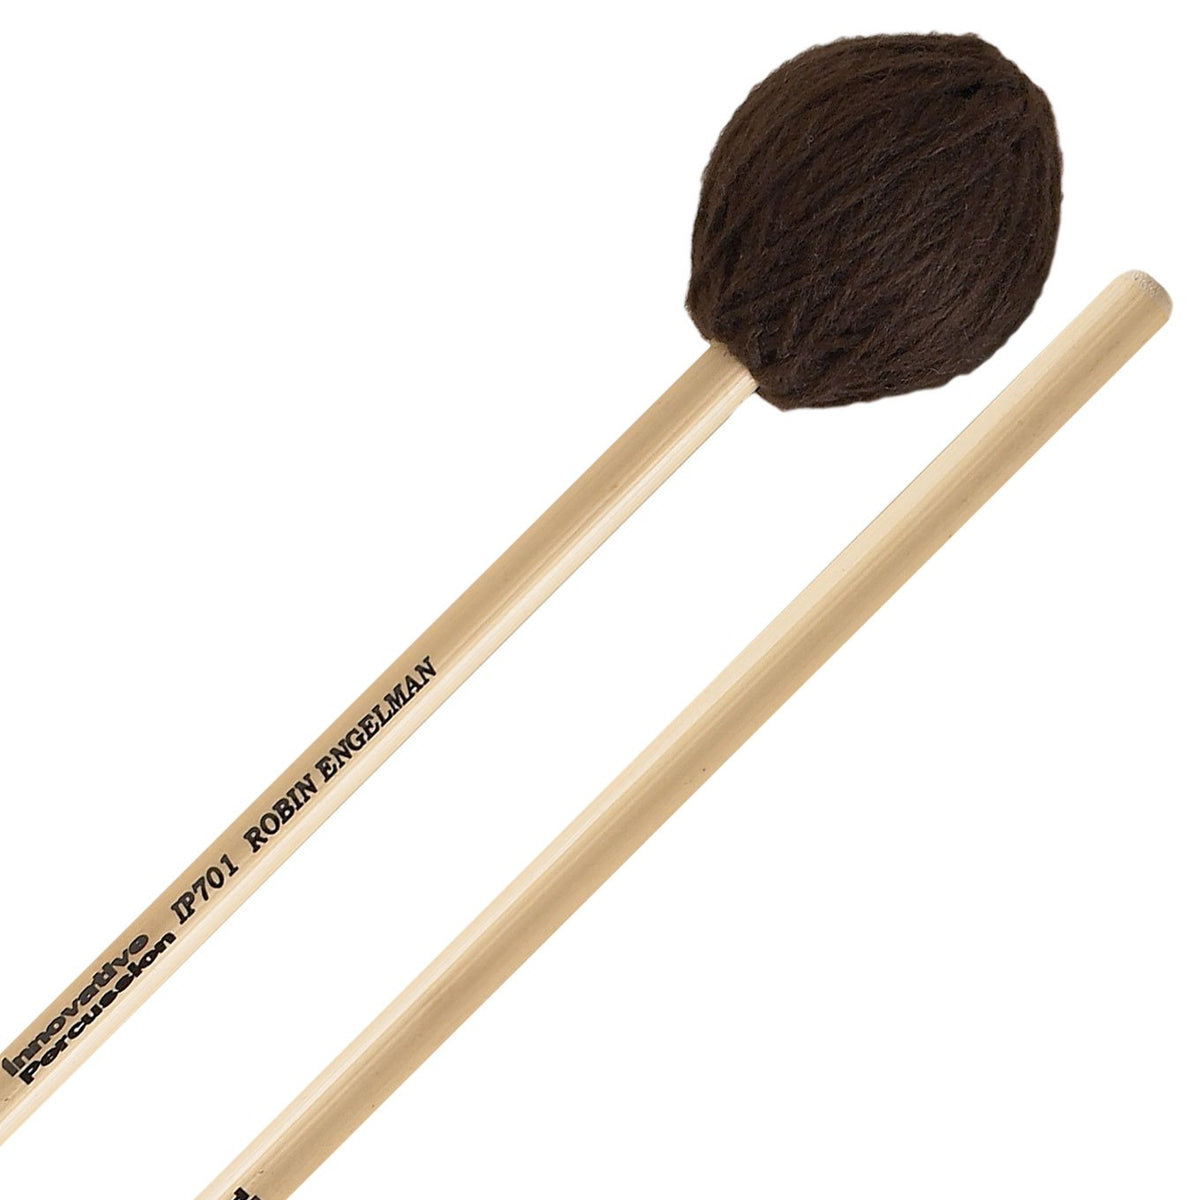 Innovative Percussion - Robin Engelman Series Concert Mallets-Percussion-Innovative Percussion-IP701: Multi-Percussion and Bass Marimba-Music Elements